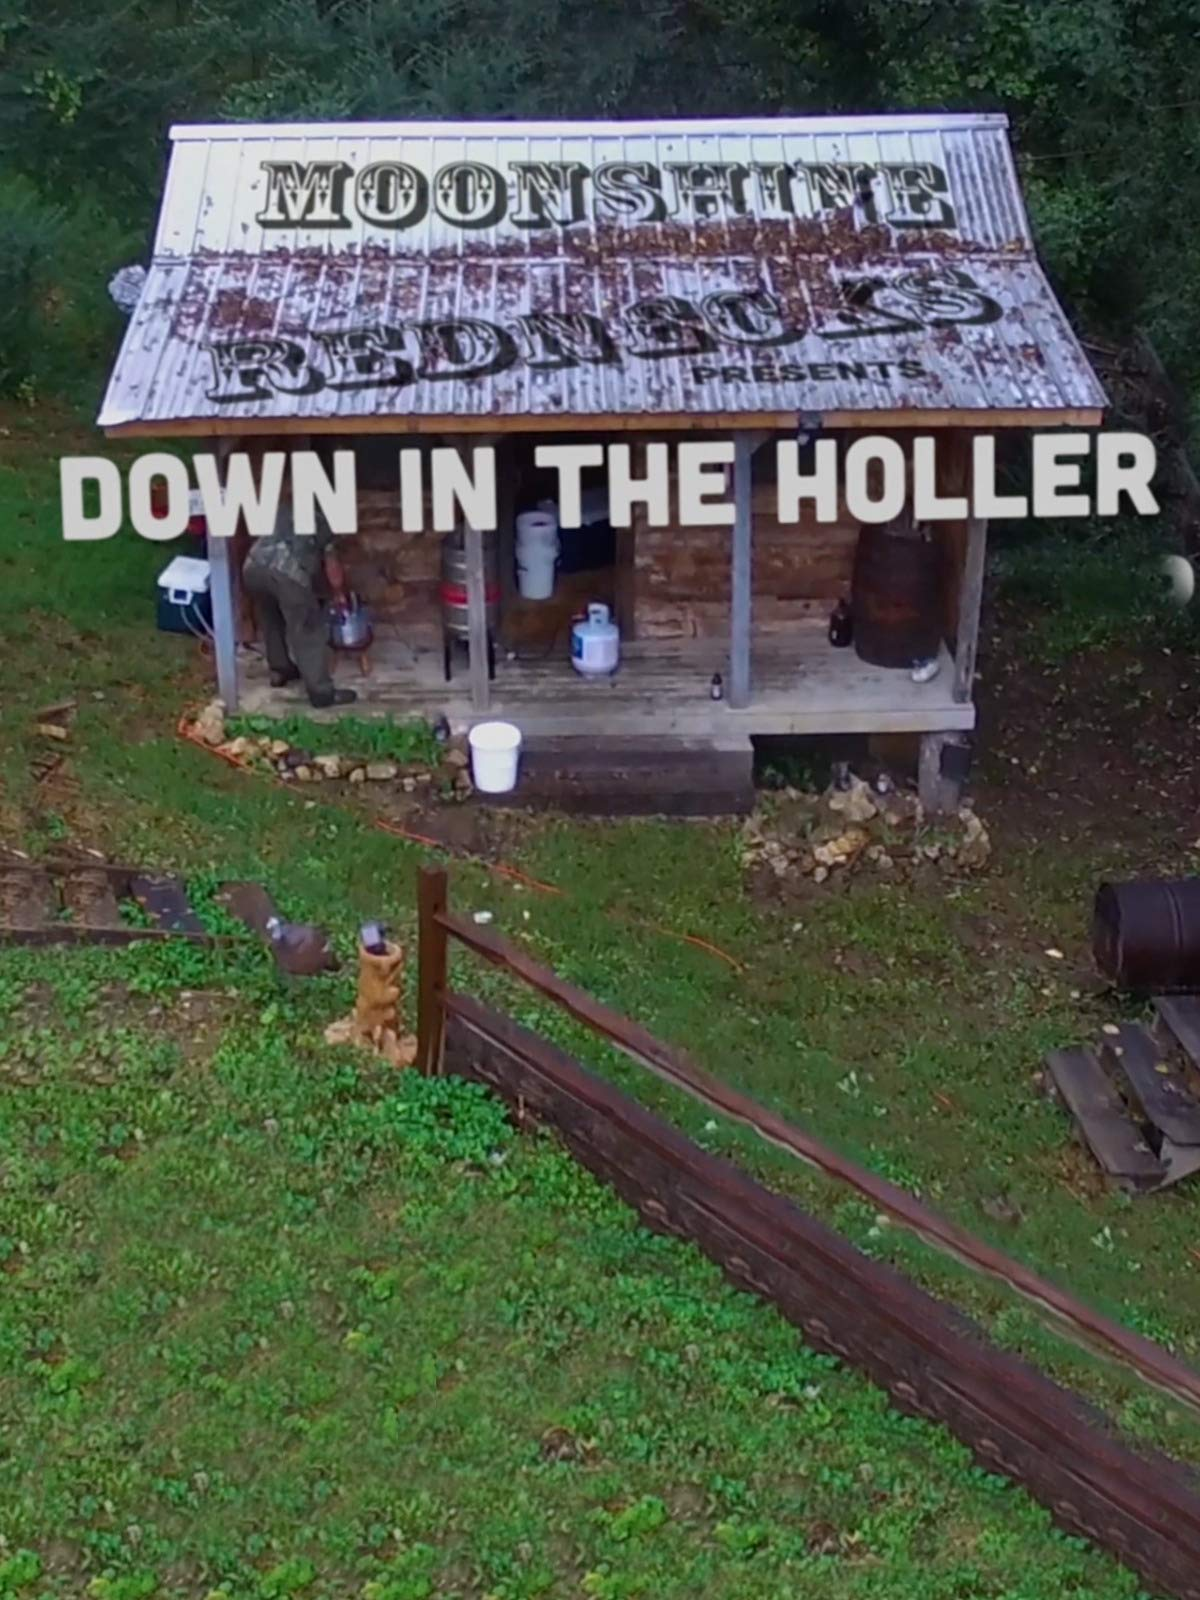 Down In The Holler